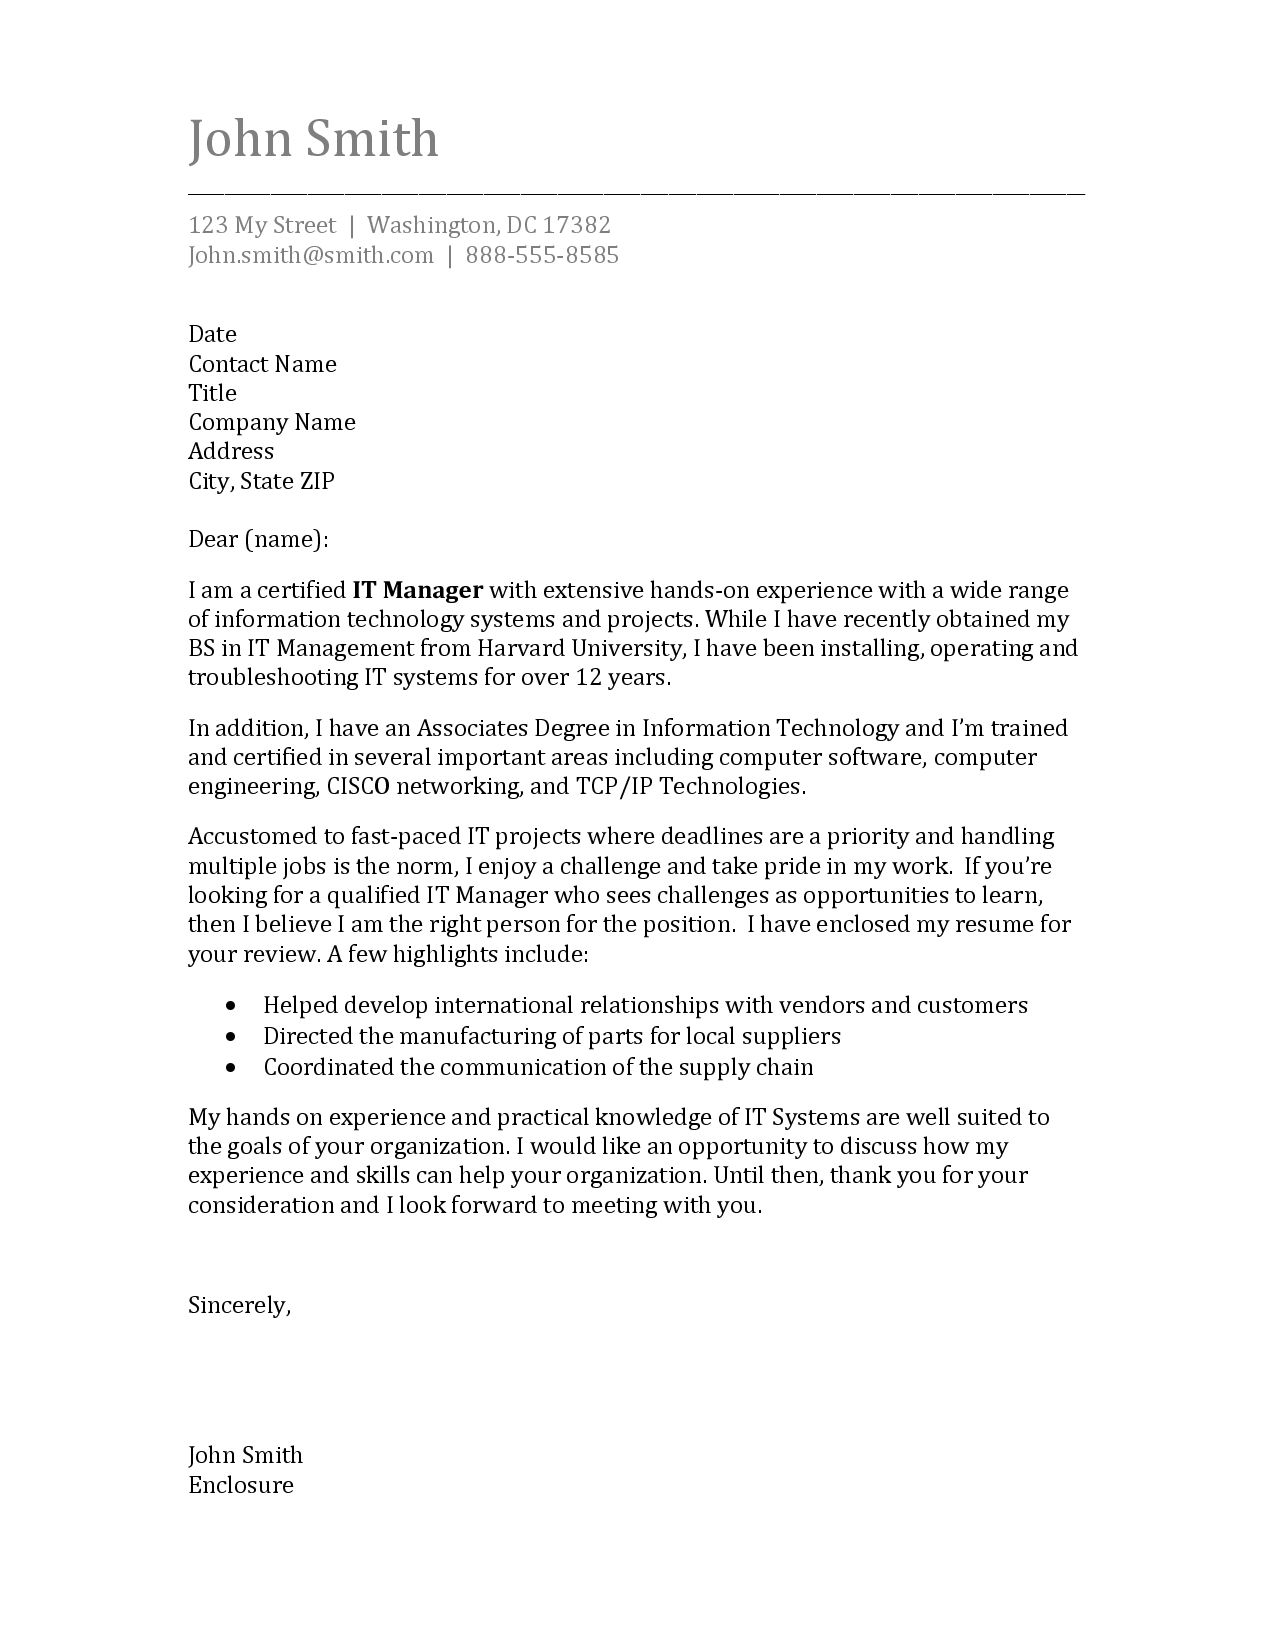 Cover Letter Template Science 1 Cover Letter Template Sample